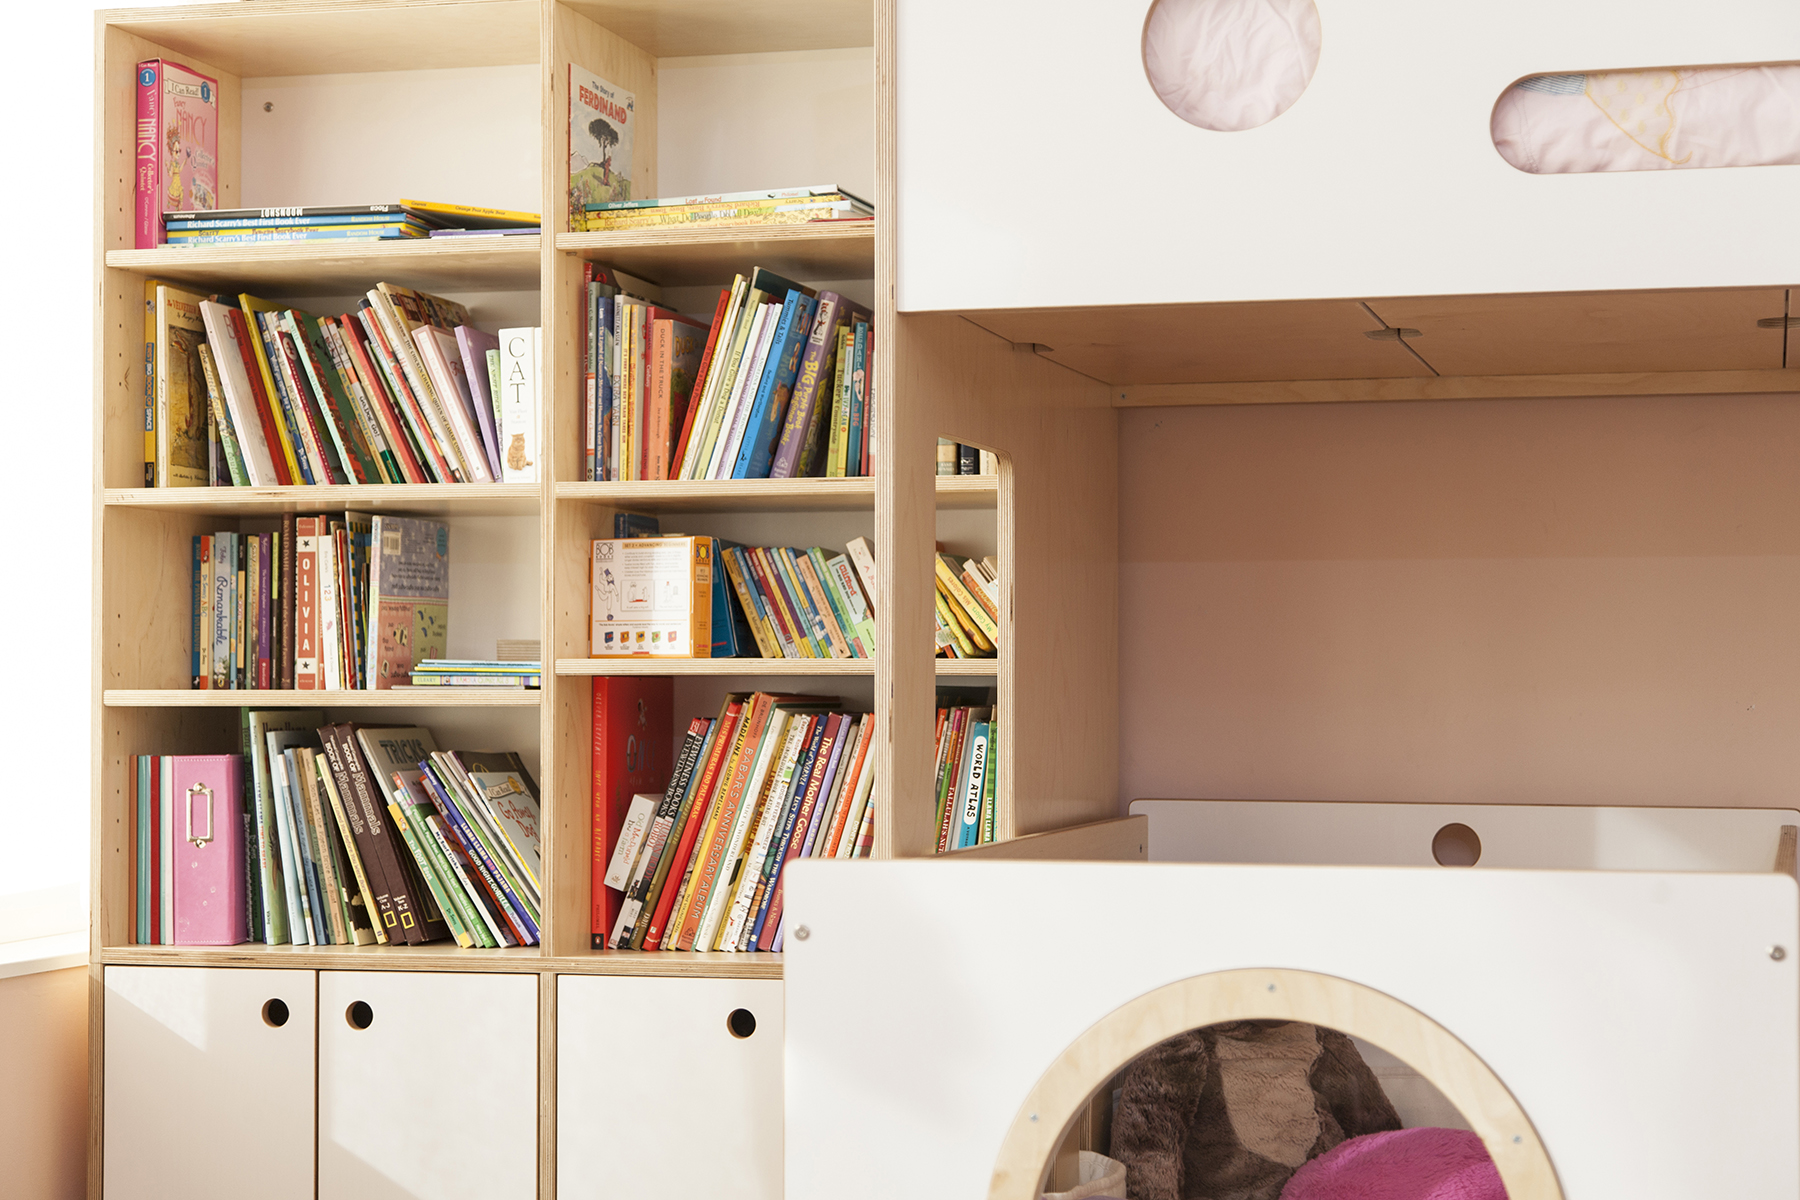 Story time made easy with this modular bookshelf